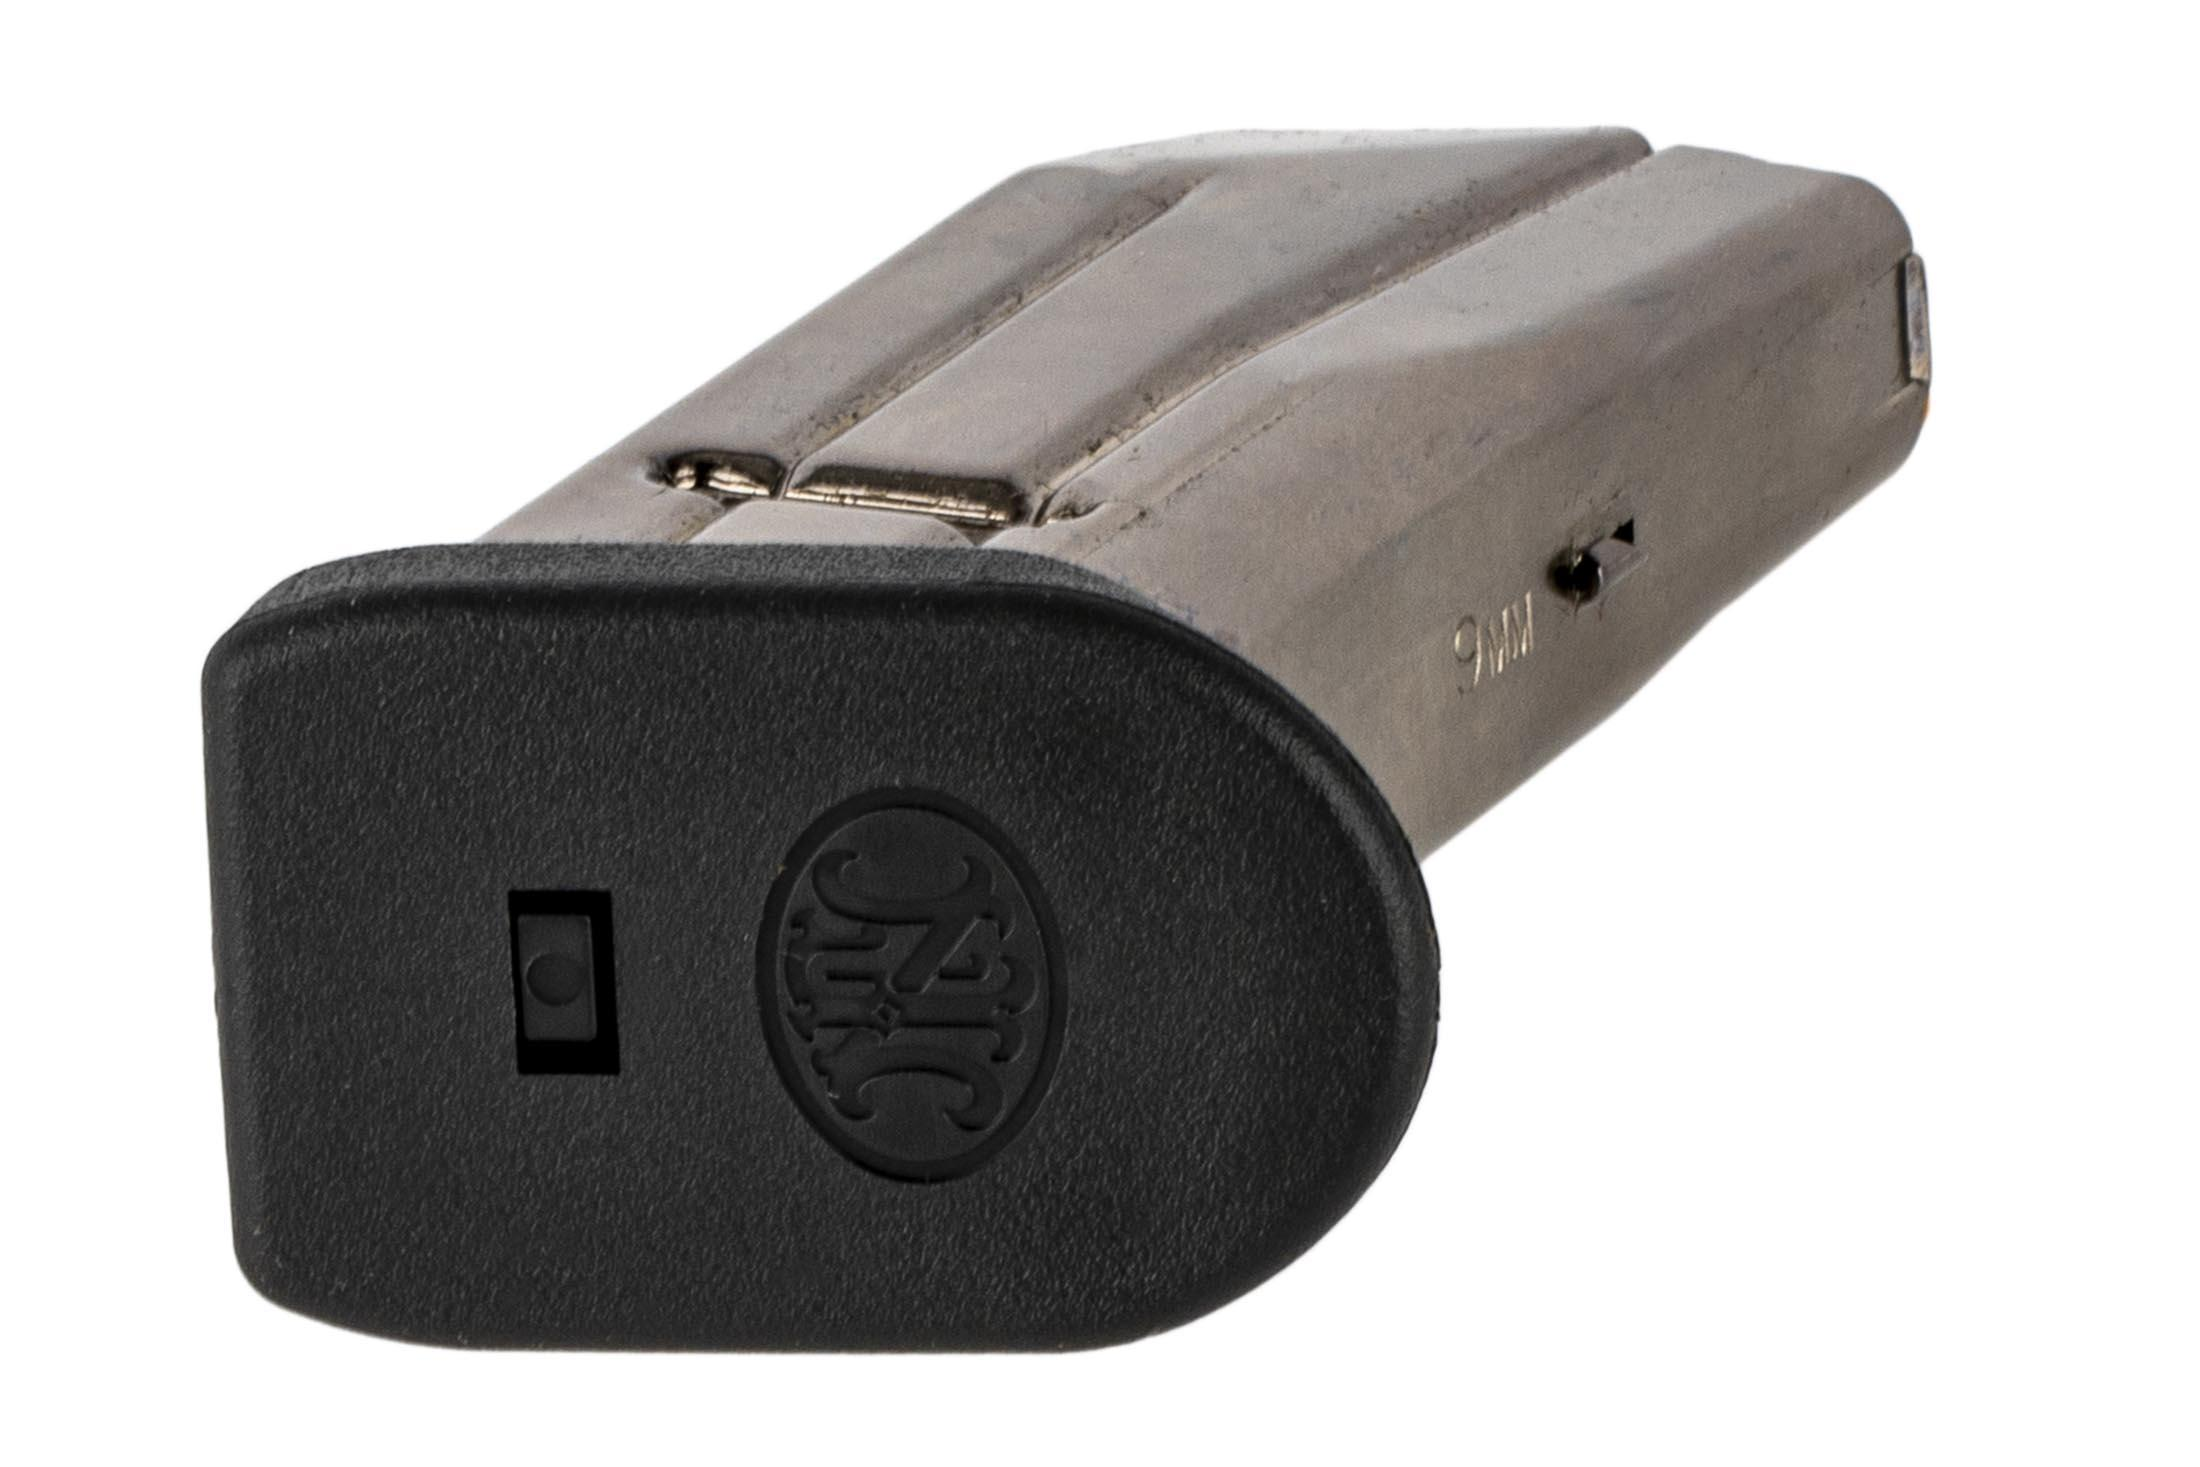 The FN FNS-9C 9mm Magazine features a flush fit polymer base pad